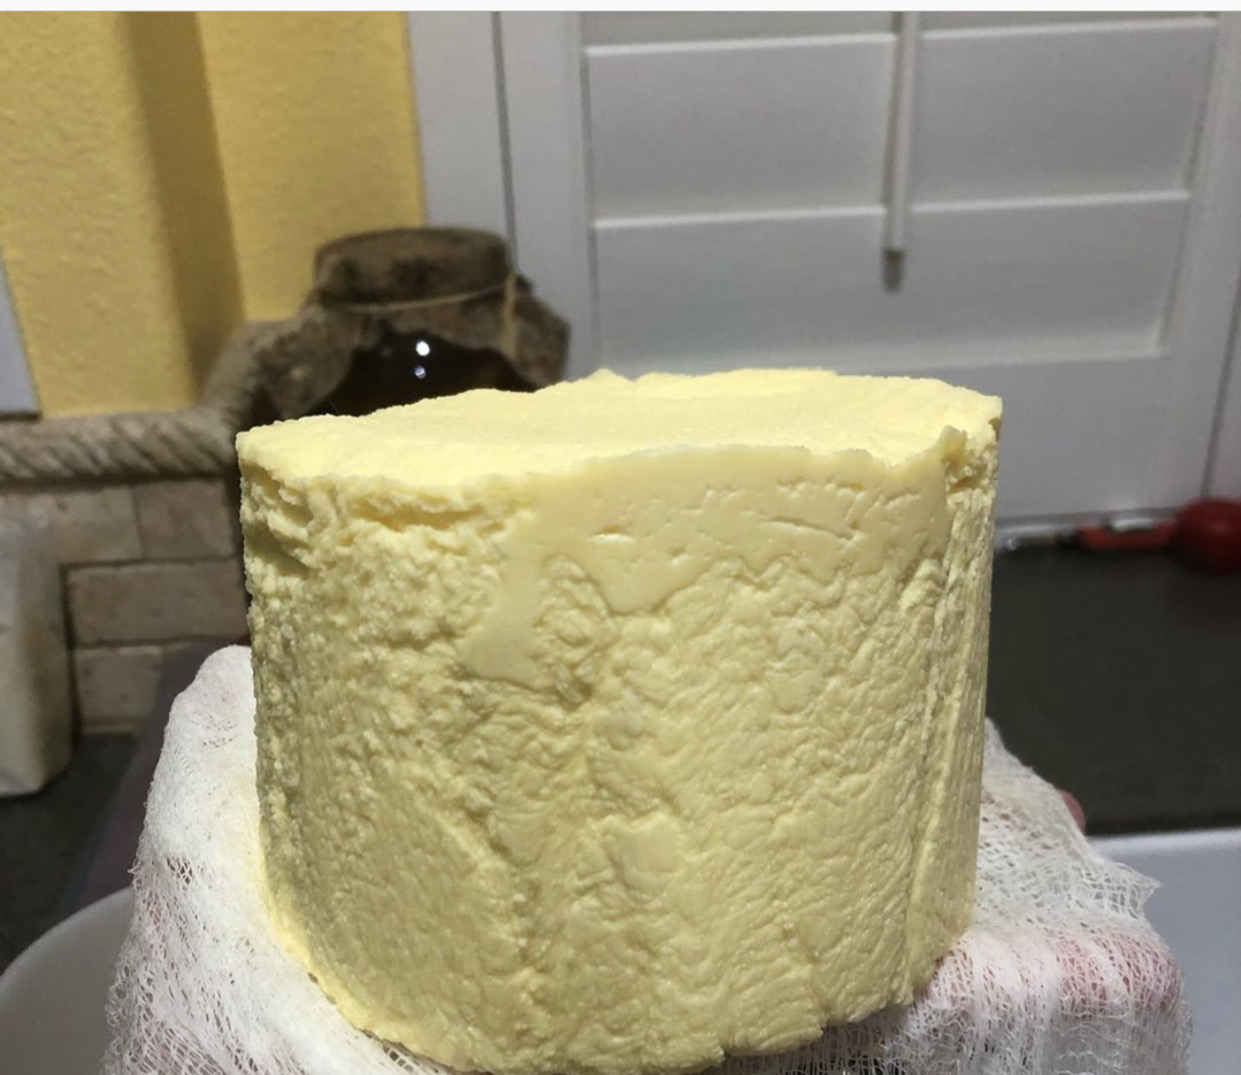 Unwrap and re-mold the cheese, press at 15 lbs for 12 hours